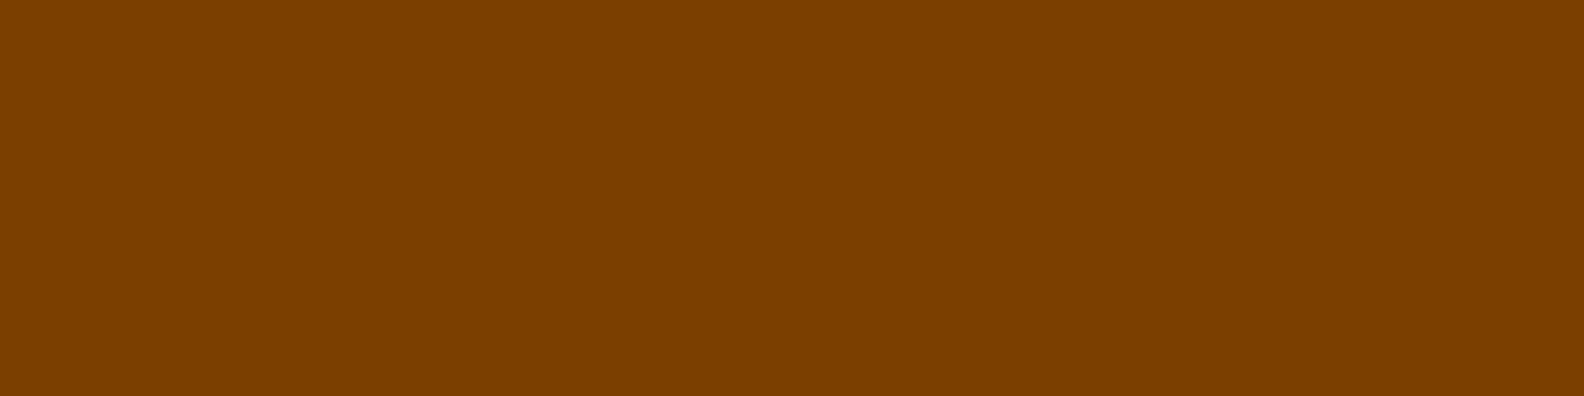 1584x396 Chocolate Traditional Solid Color Background